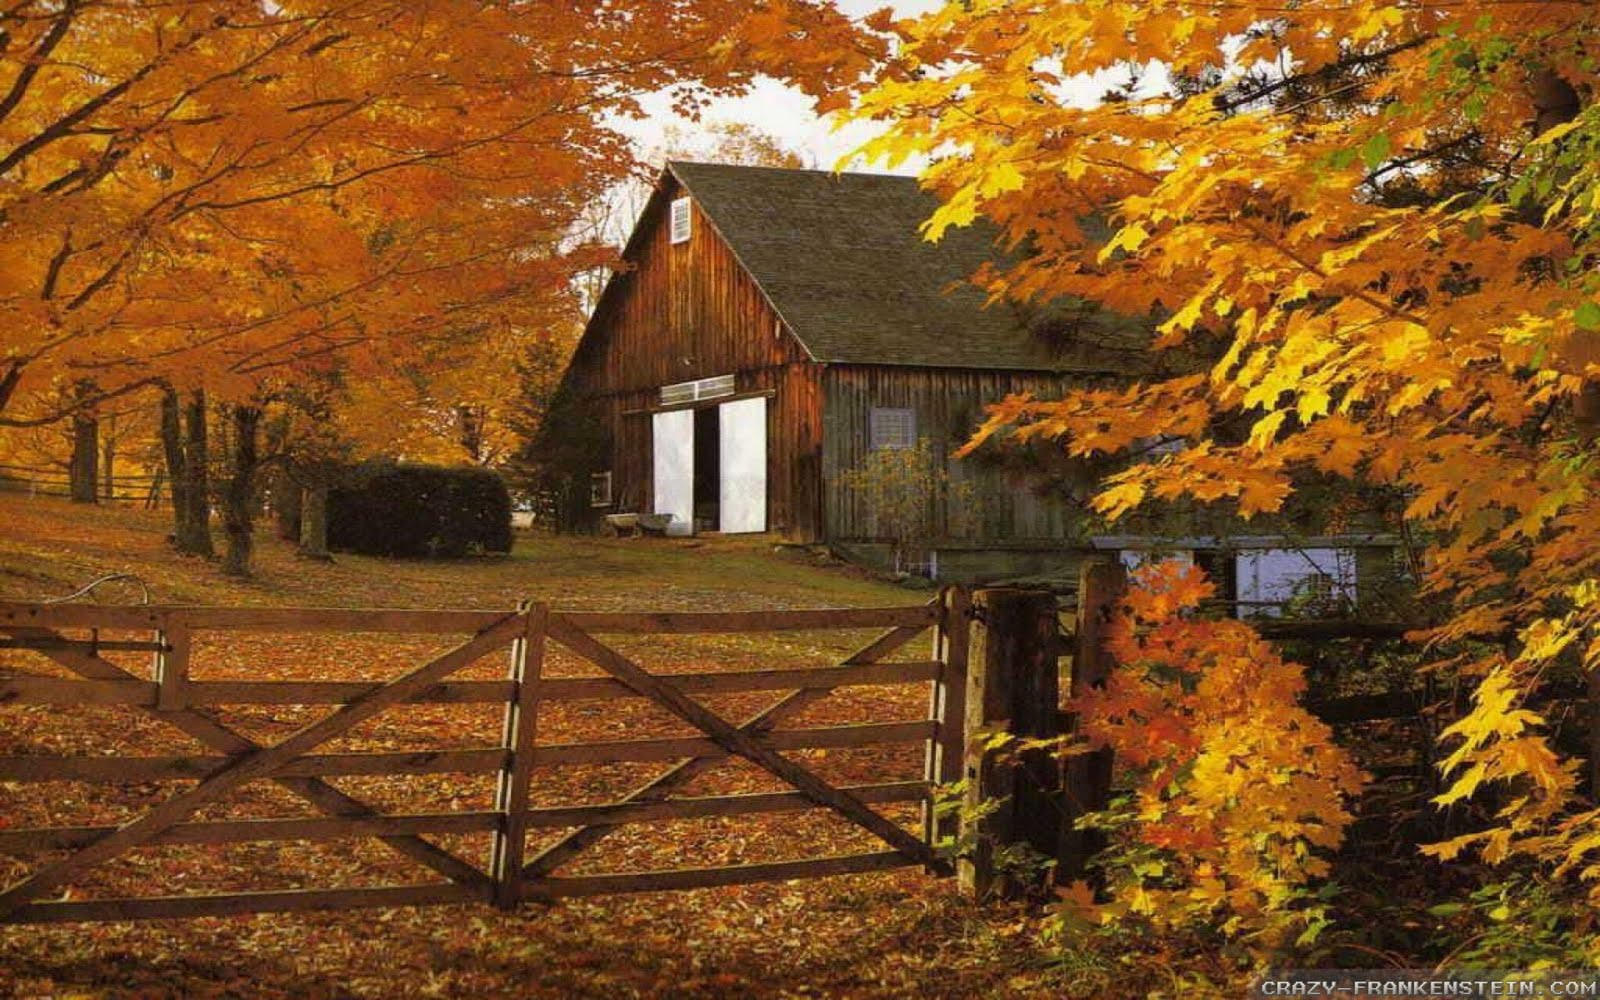 http://4.bp.blogspot.com/-td30SFi_x3U/Tj9cwfRs7dI/AAAAAAAAADQ/Kf-x6I_jMi8/s1600/autumn-barn-in-fall-leaves-wallpapers-1920x1200.jpg